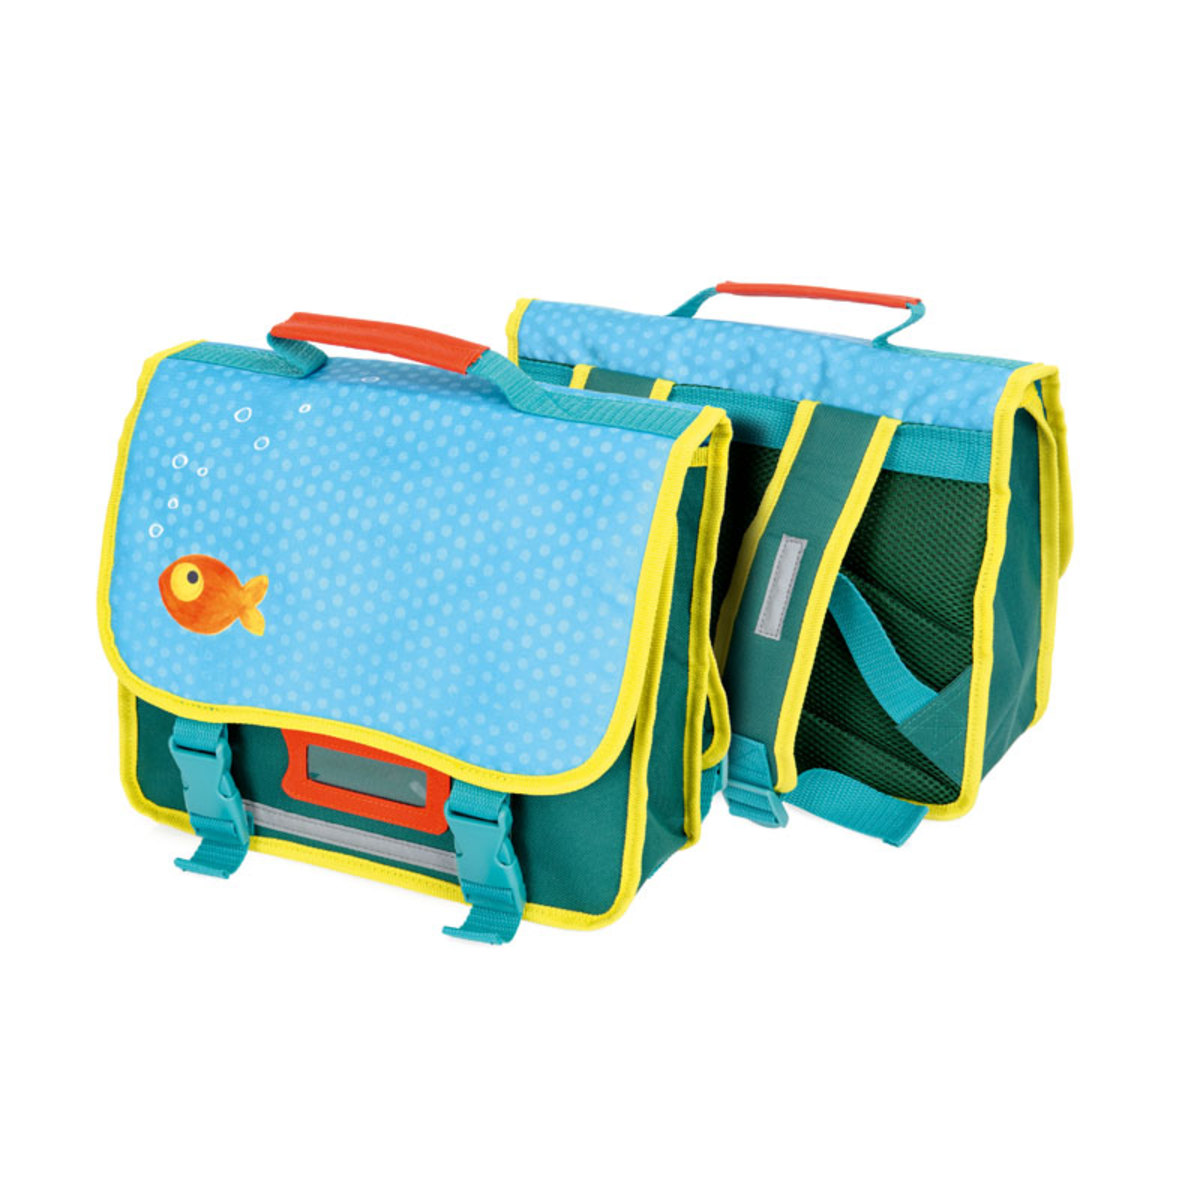 Cartable poisson rouge 410230 achat vente bagagerie for Vente poisson rouge montpellier